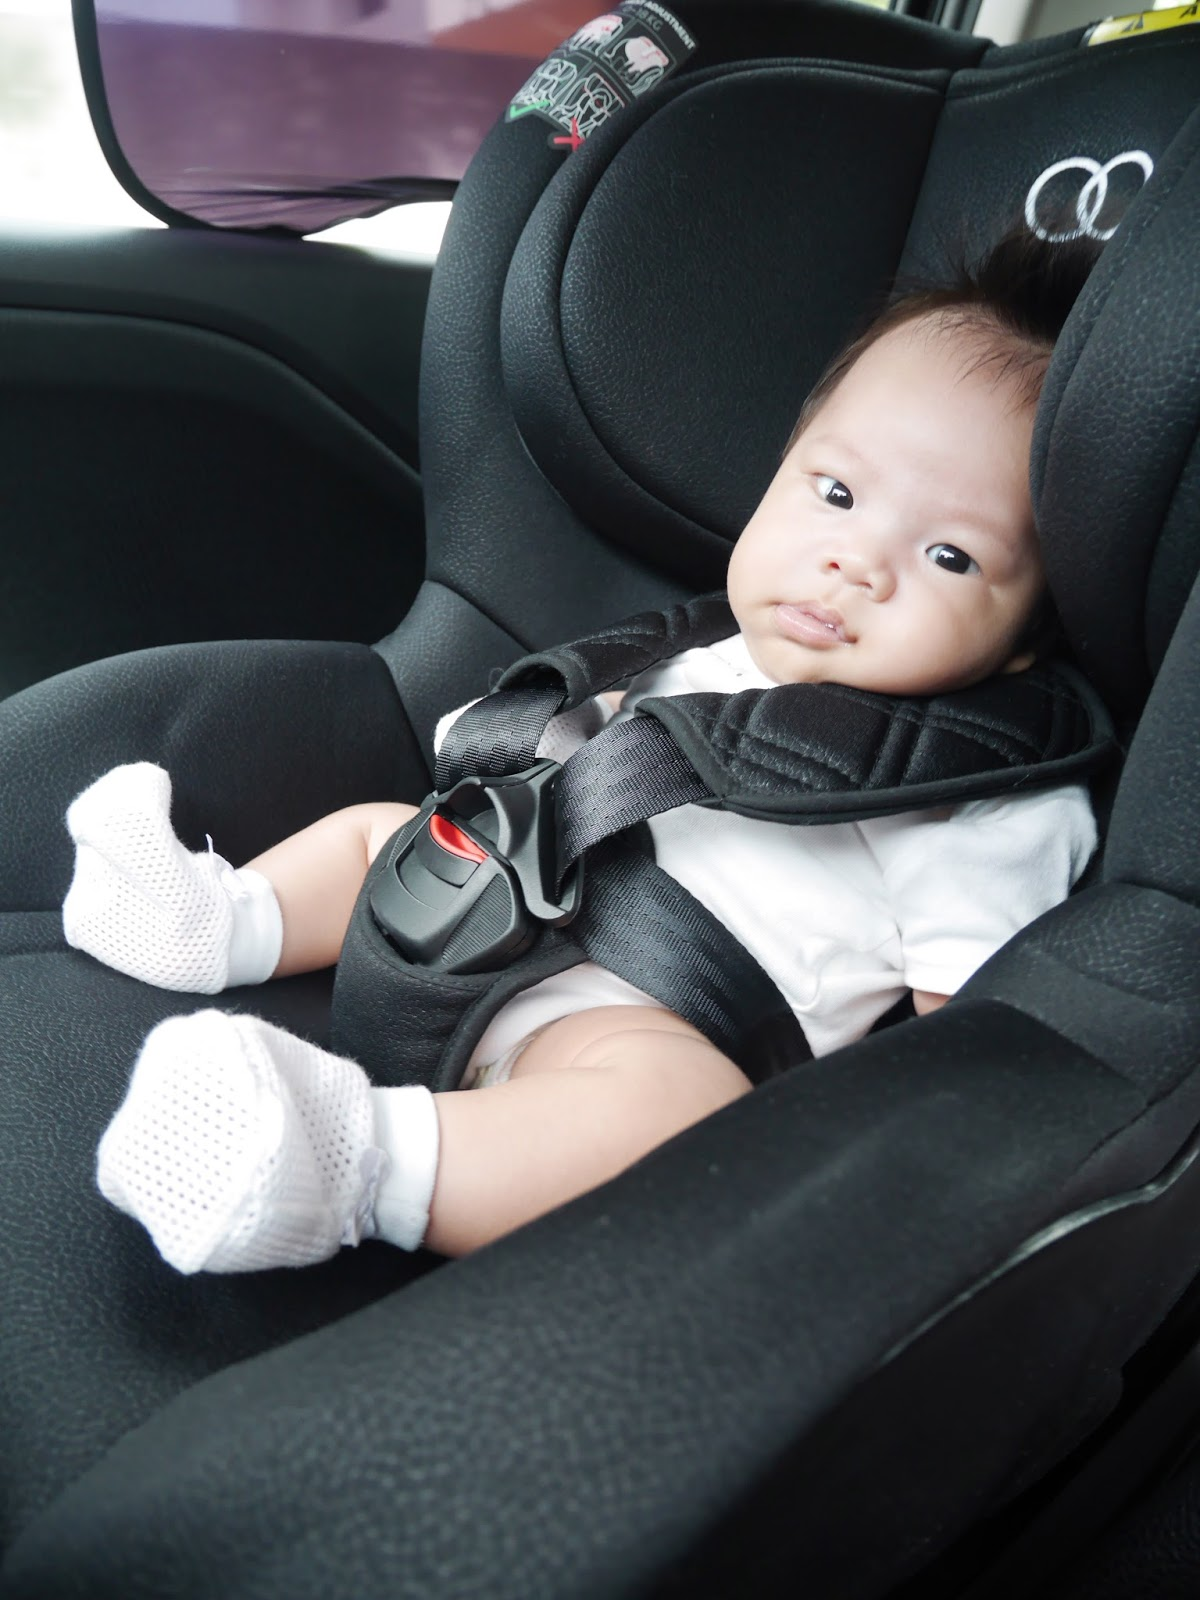 Careentan com review koopers mambo car seat and koopers sleigh baby cot